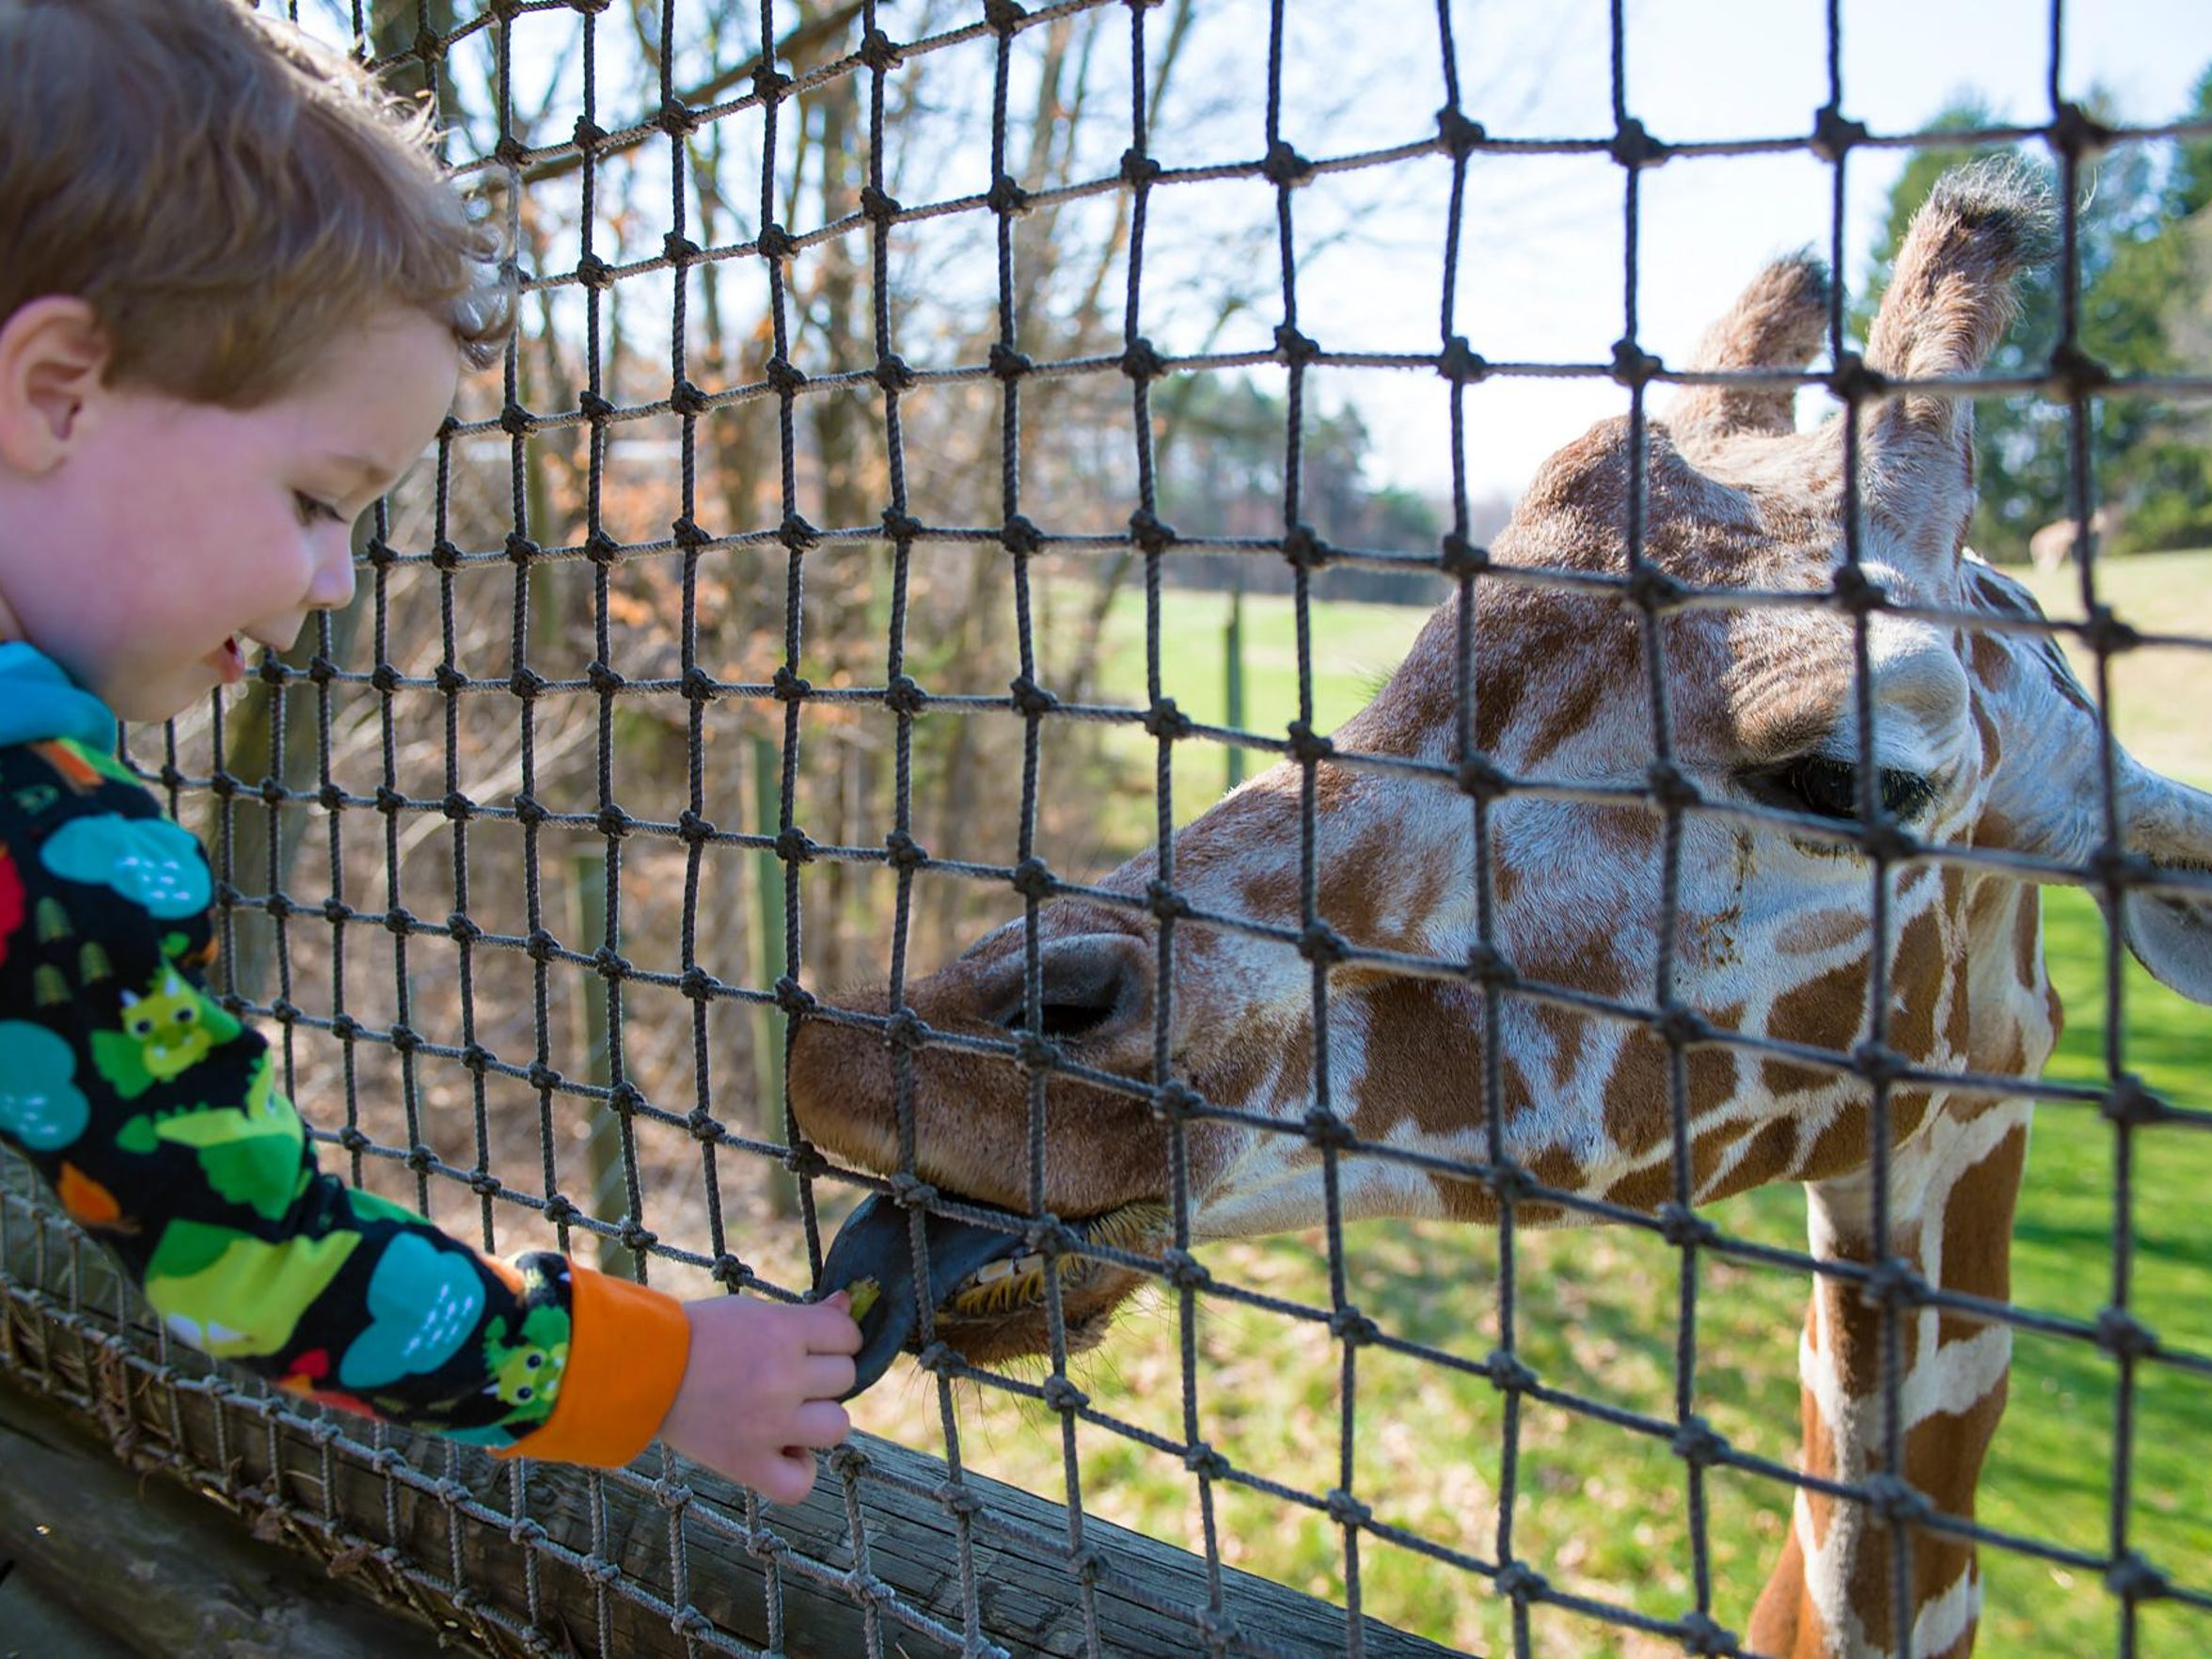 Raiden Stanton feeds a giraffe at Binder Park Zoo.